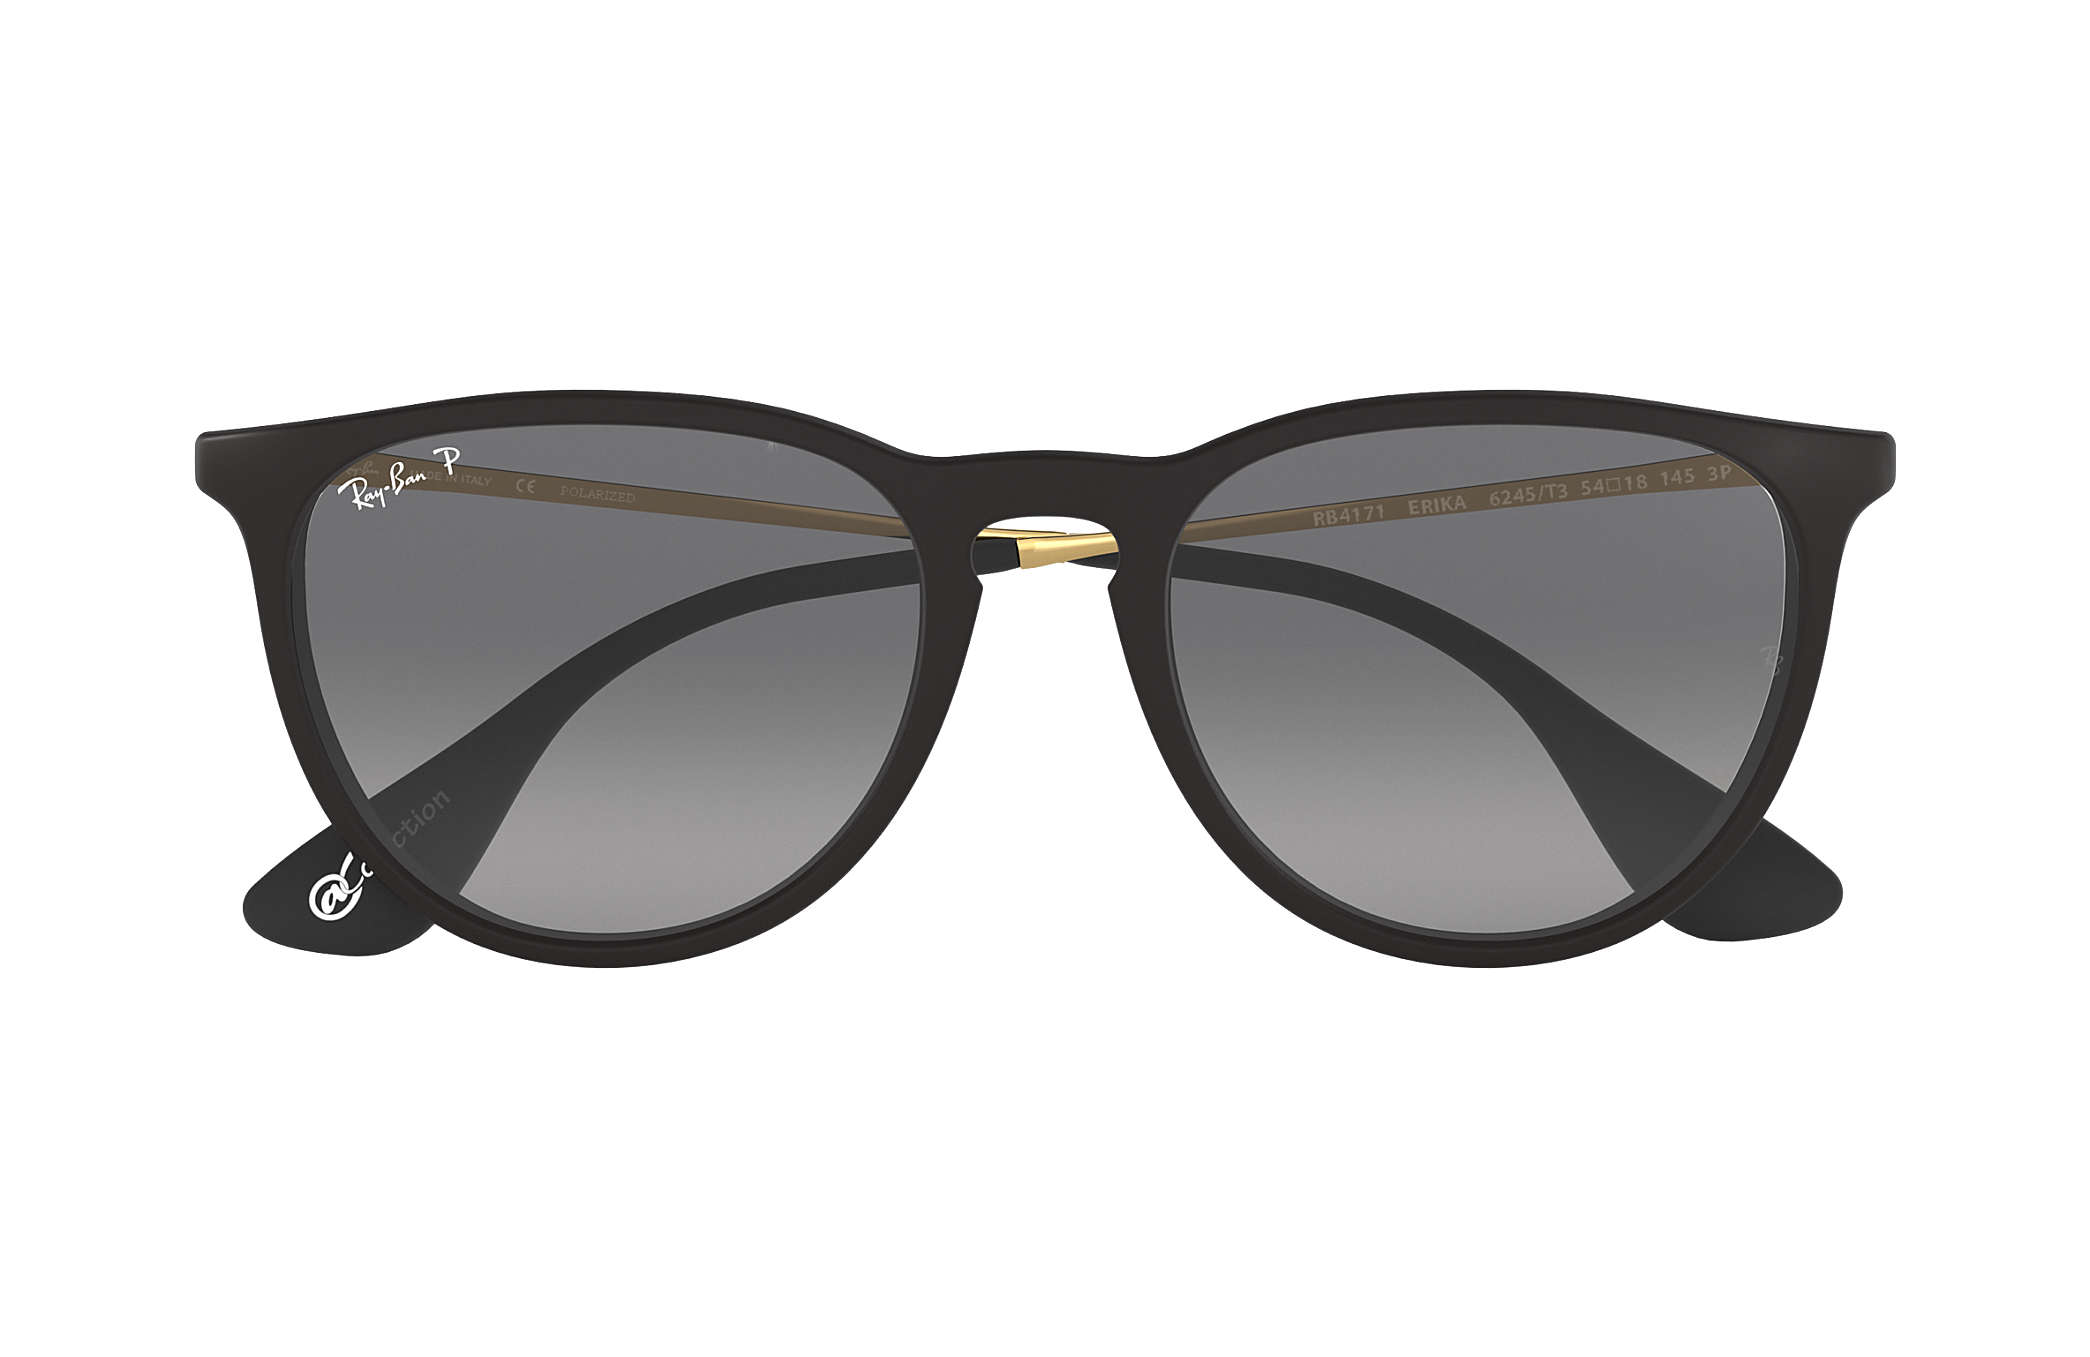 Erika  collection Ray-Ban RB4171 Noir - Nylon - Gris Verres ... 16fcfdcaff74